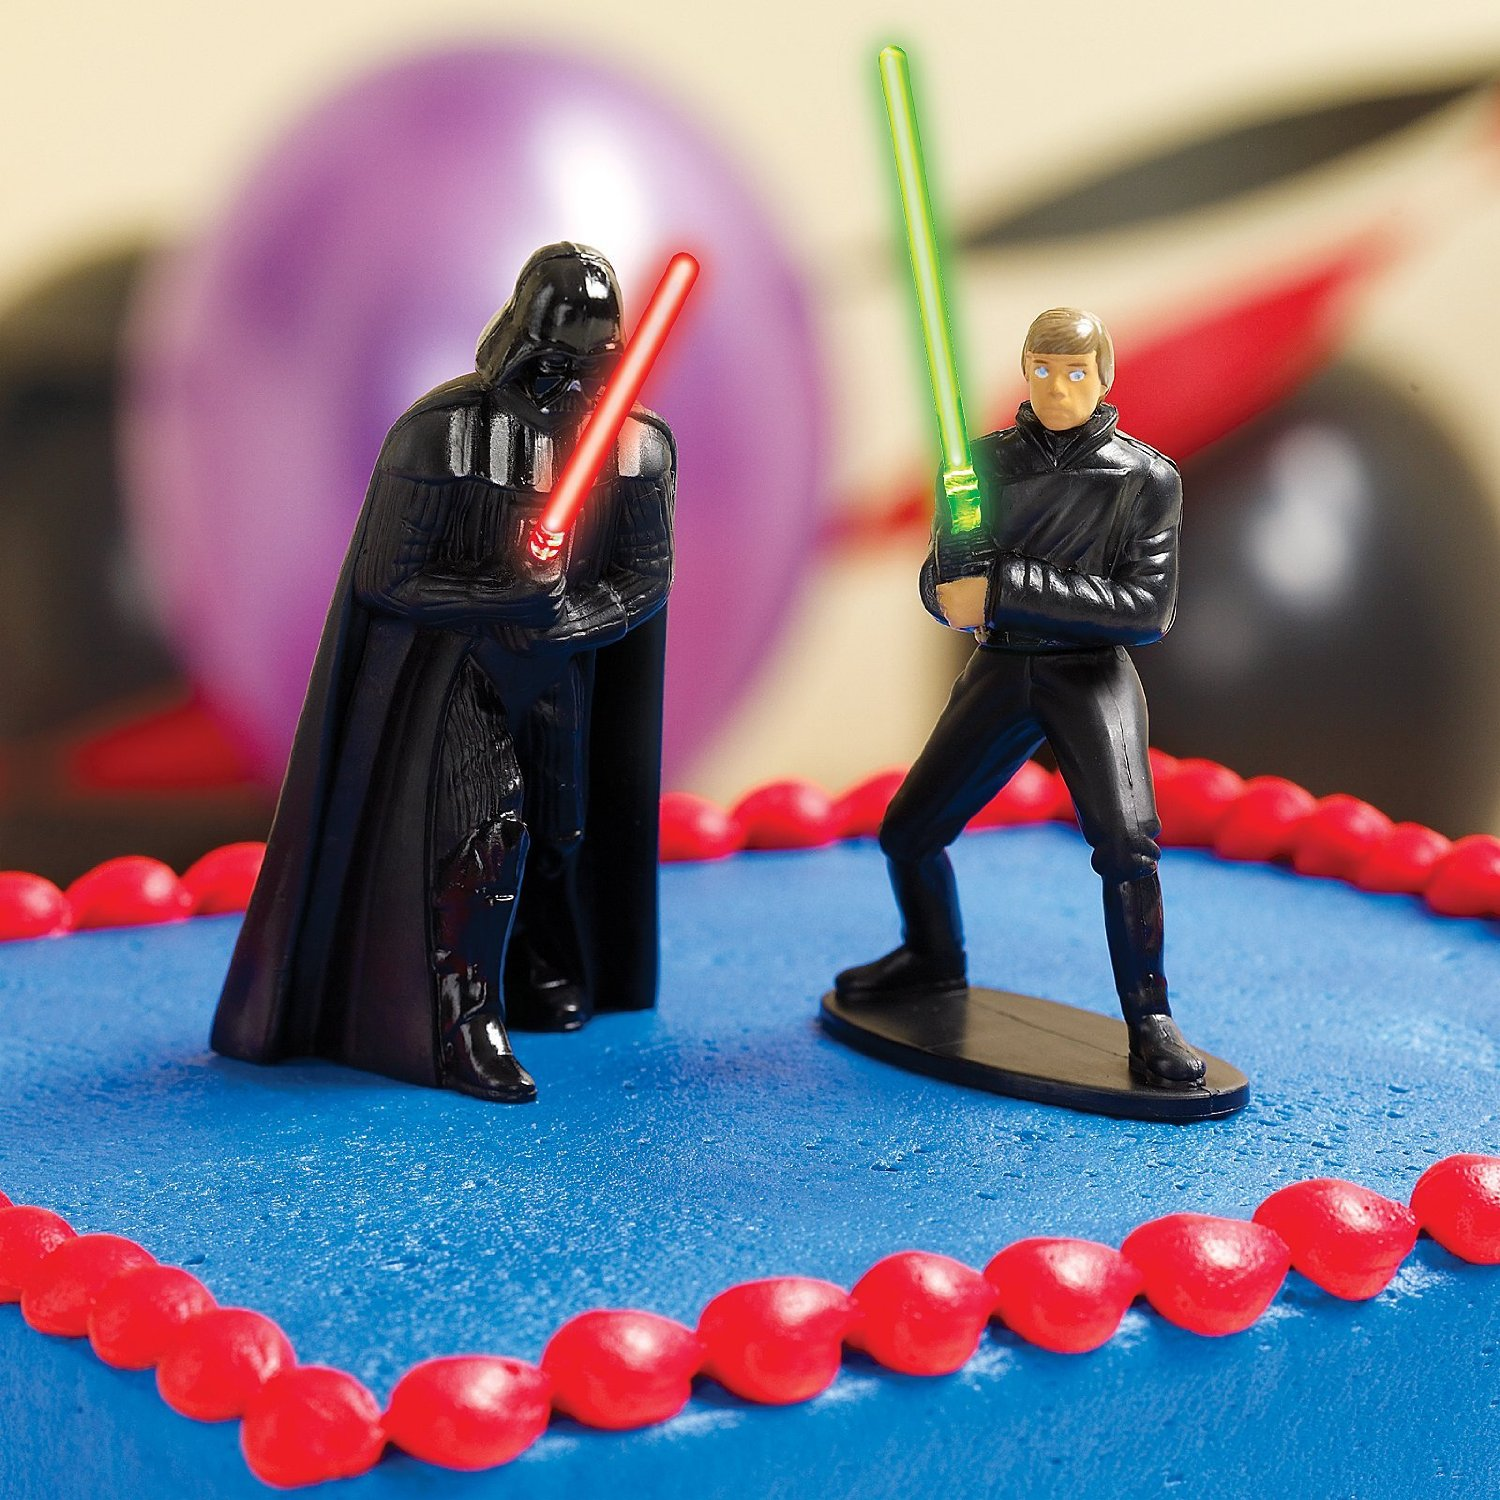 Star Wars Cake Decorating Kit